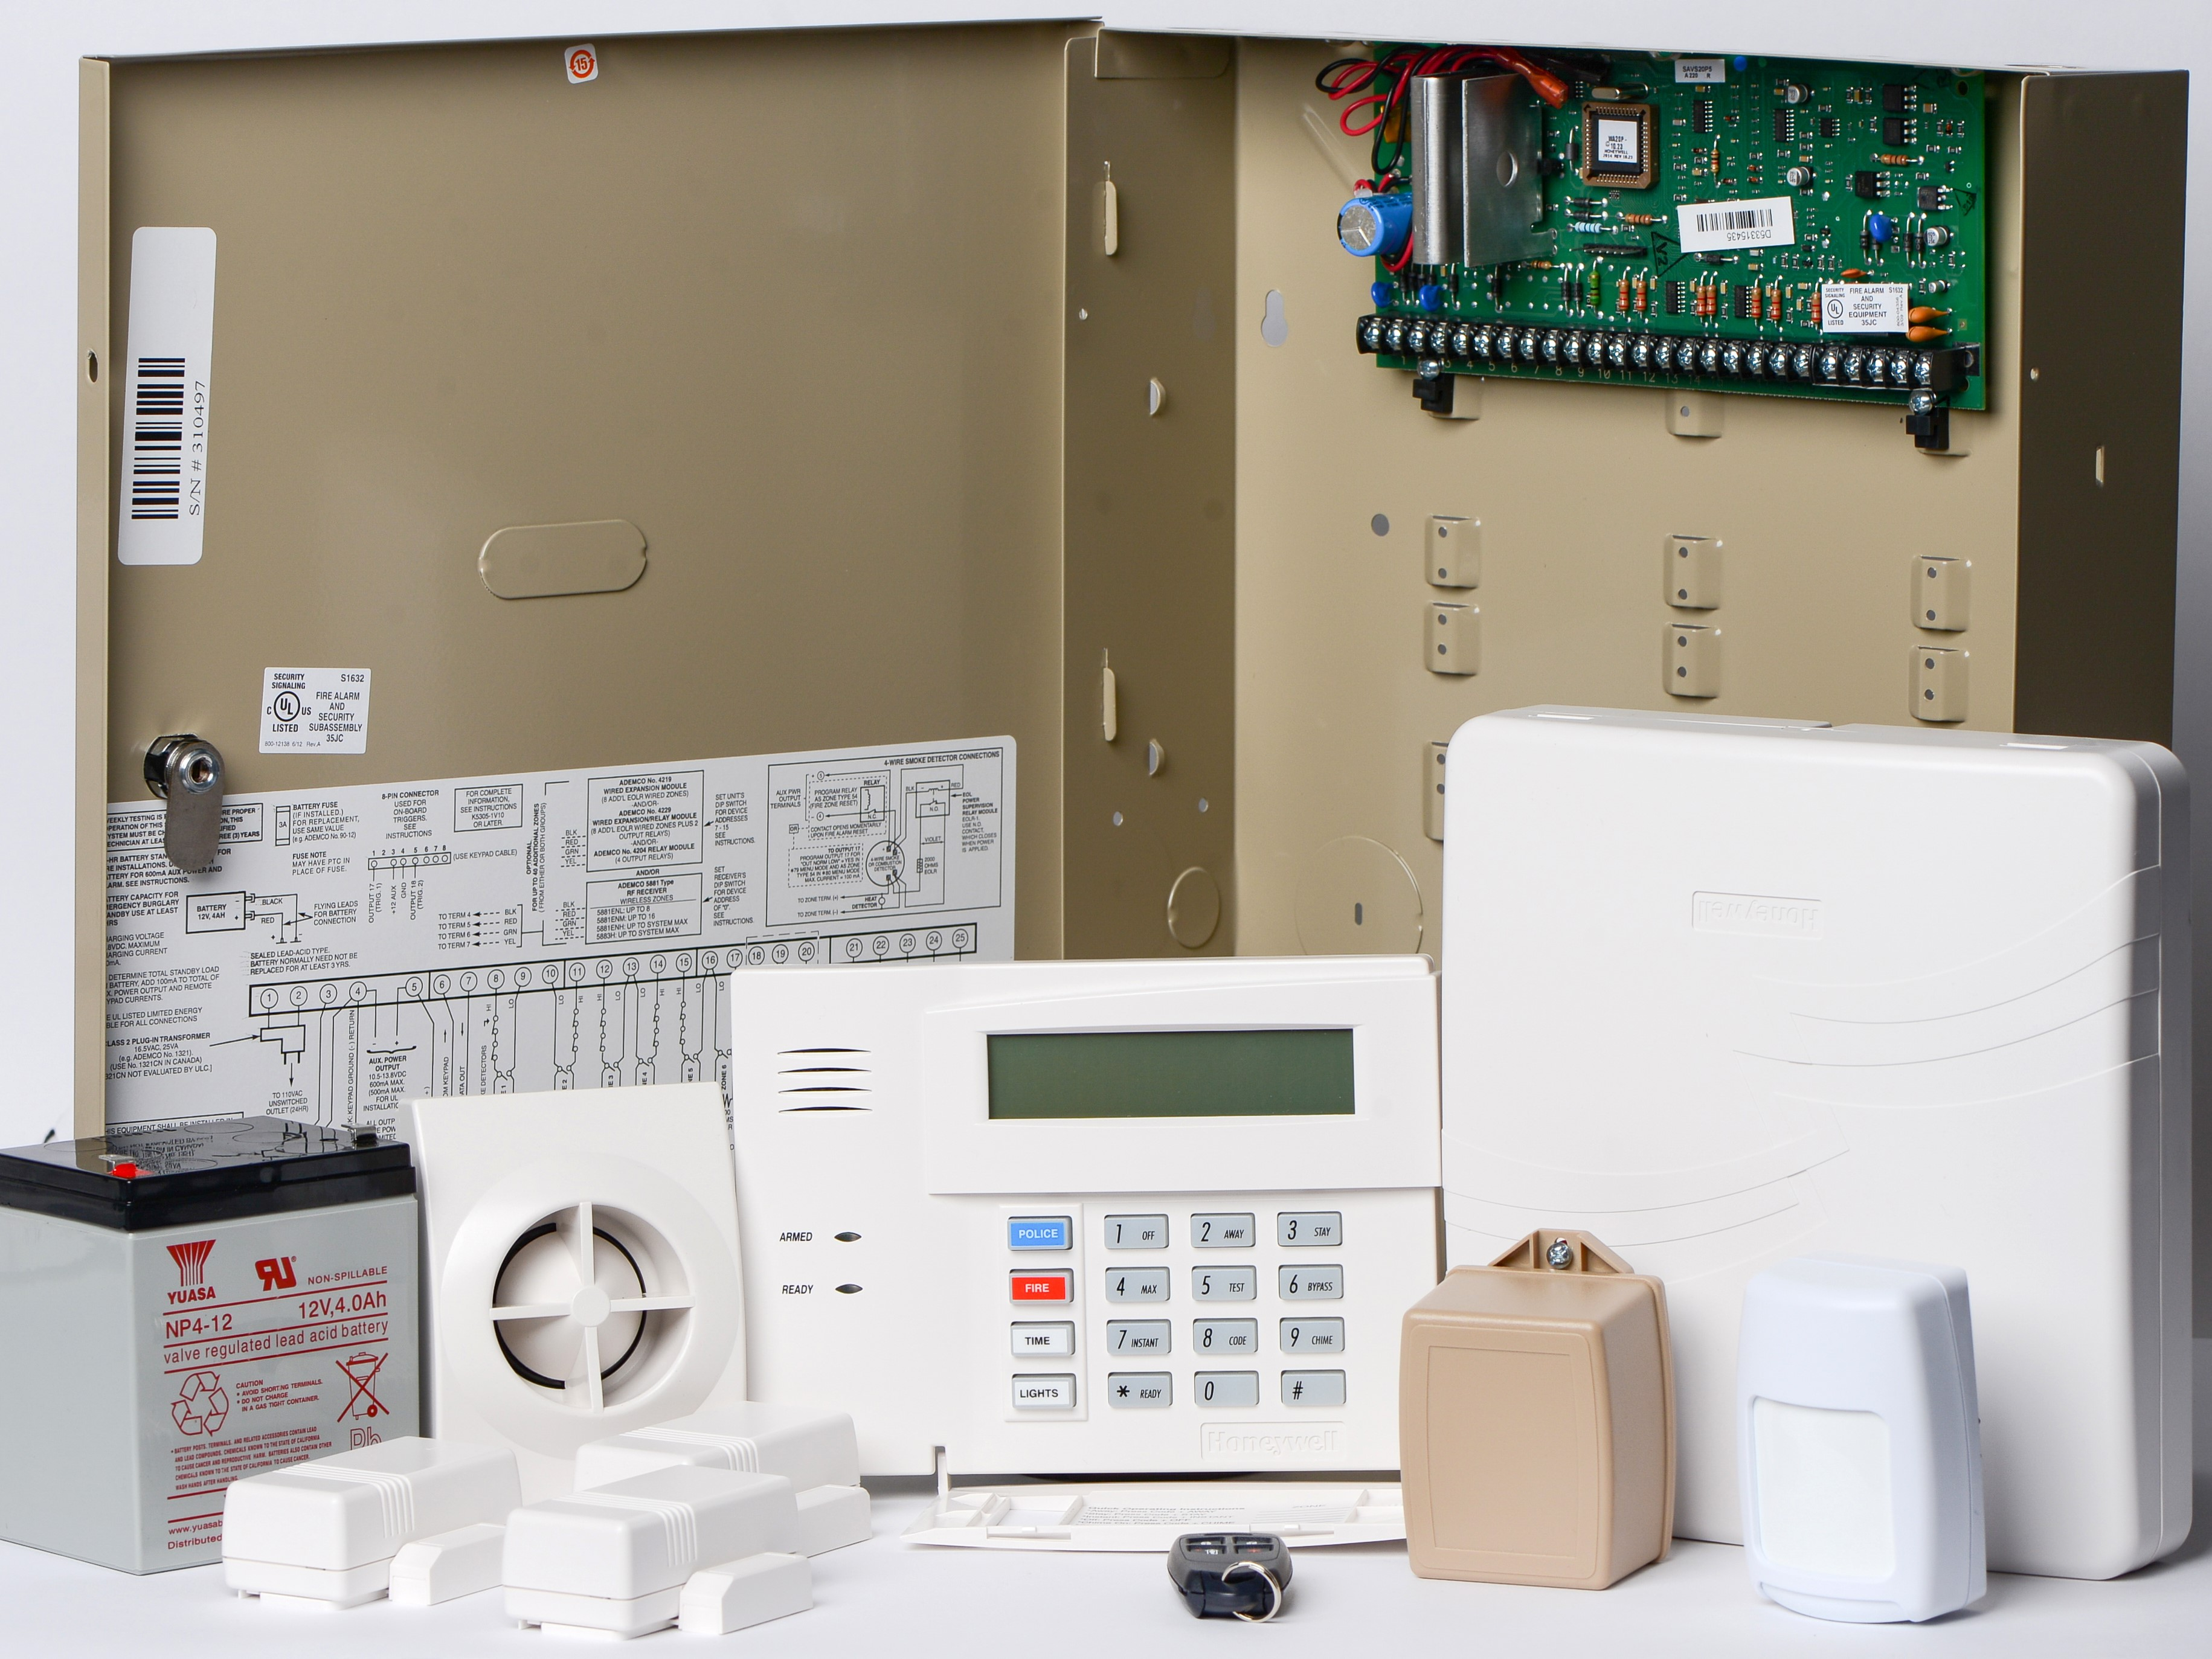 The Complete Guide to Purchasing an Intruder Alarm